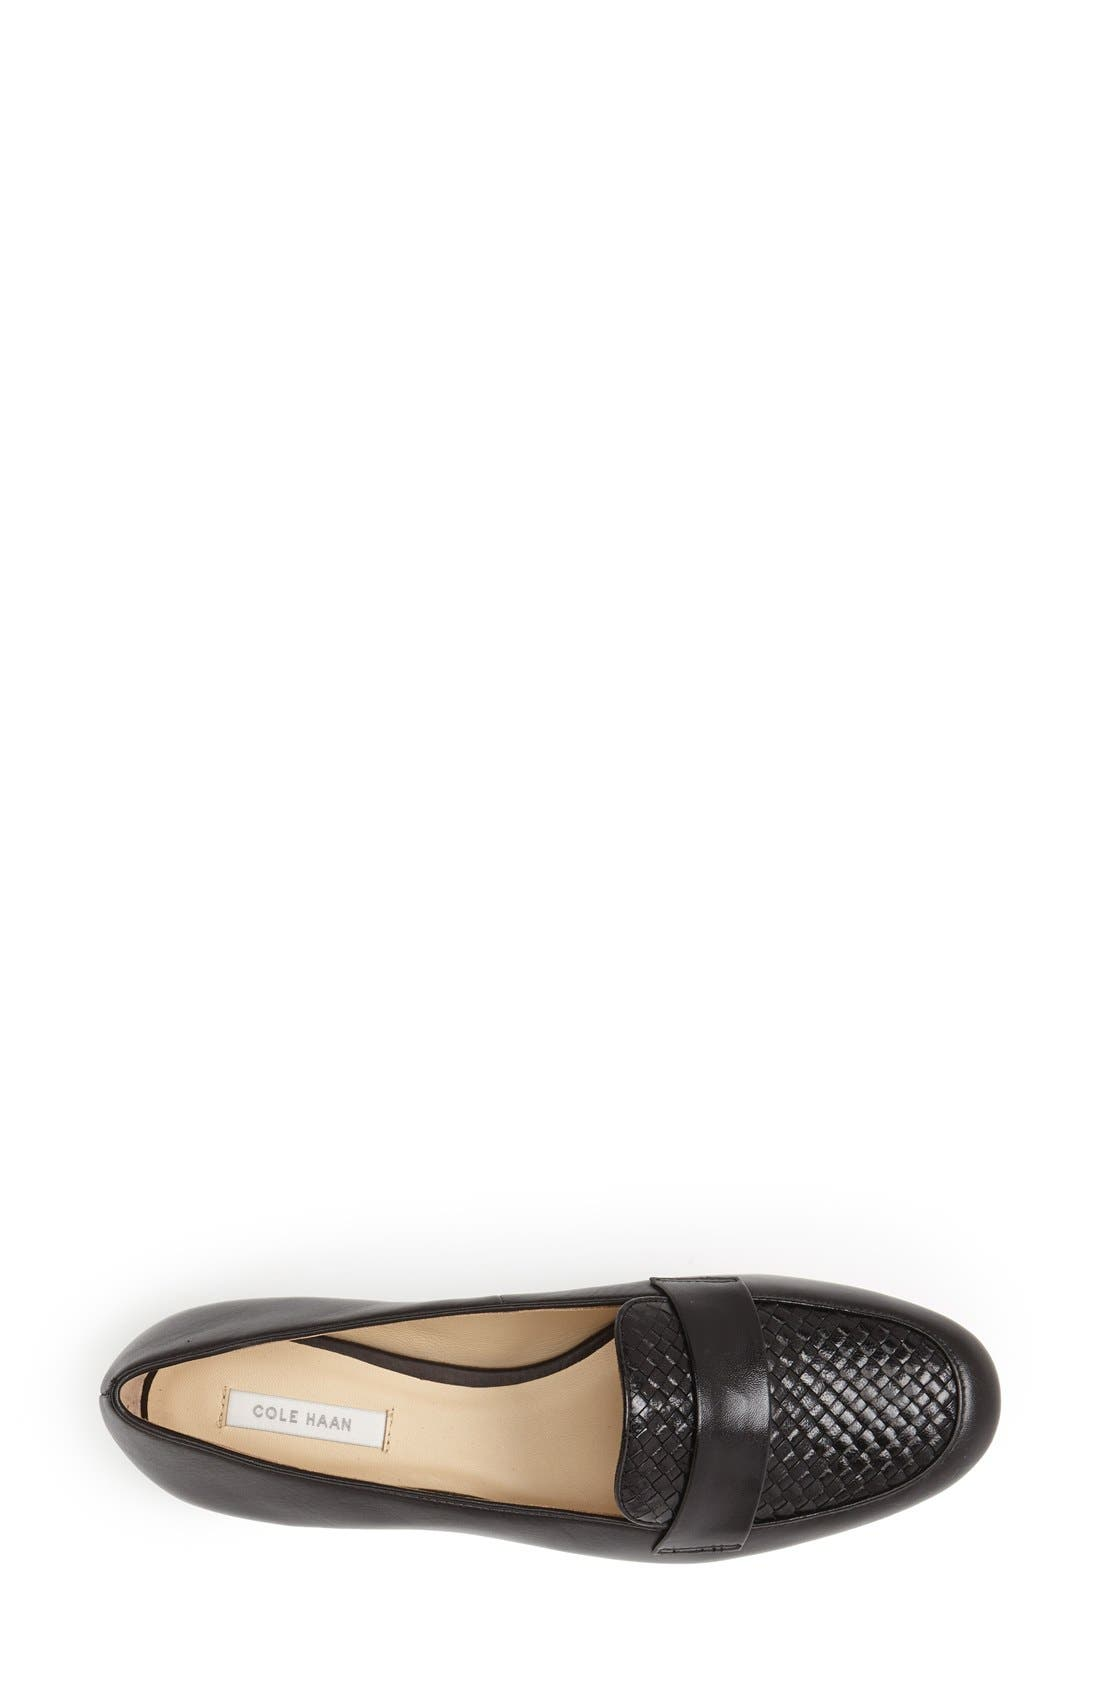 Alternate Image 3  - Cole Haan 'Dakota' Woven Leather Loafer (Women)